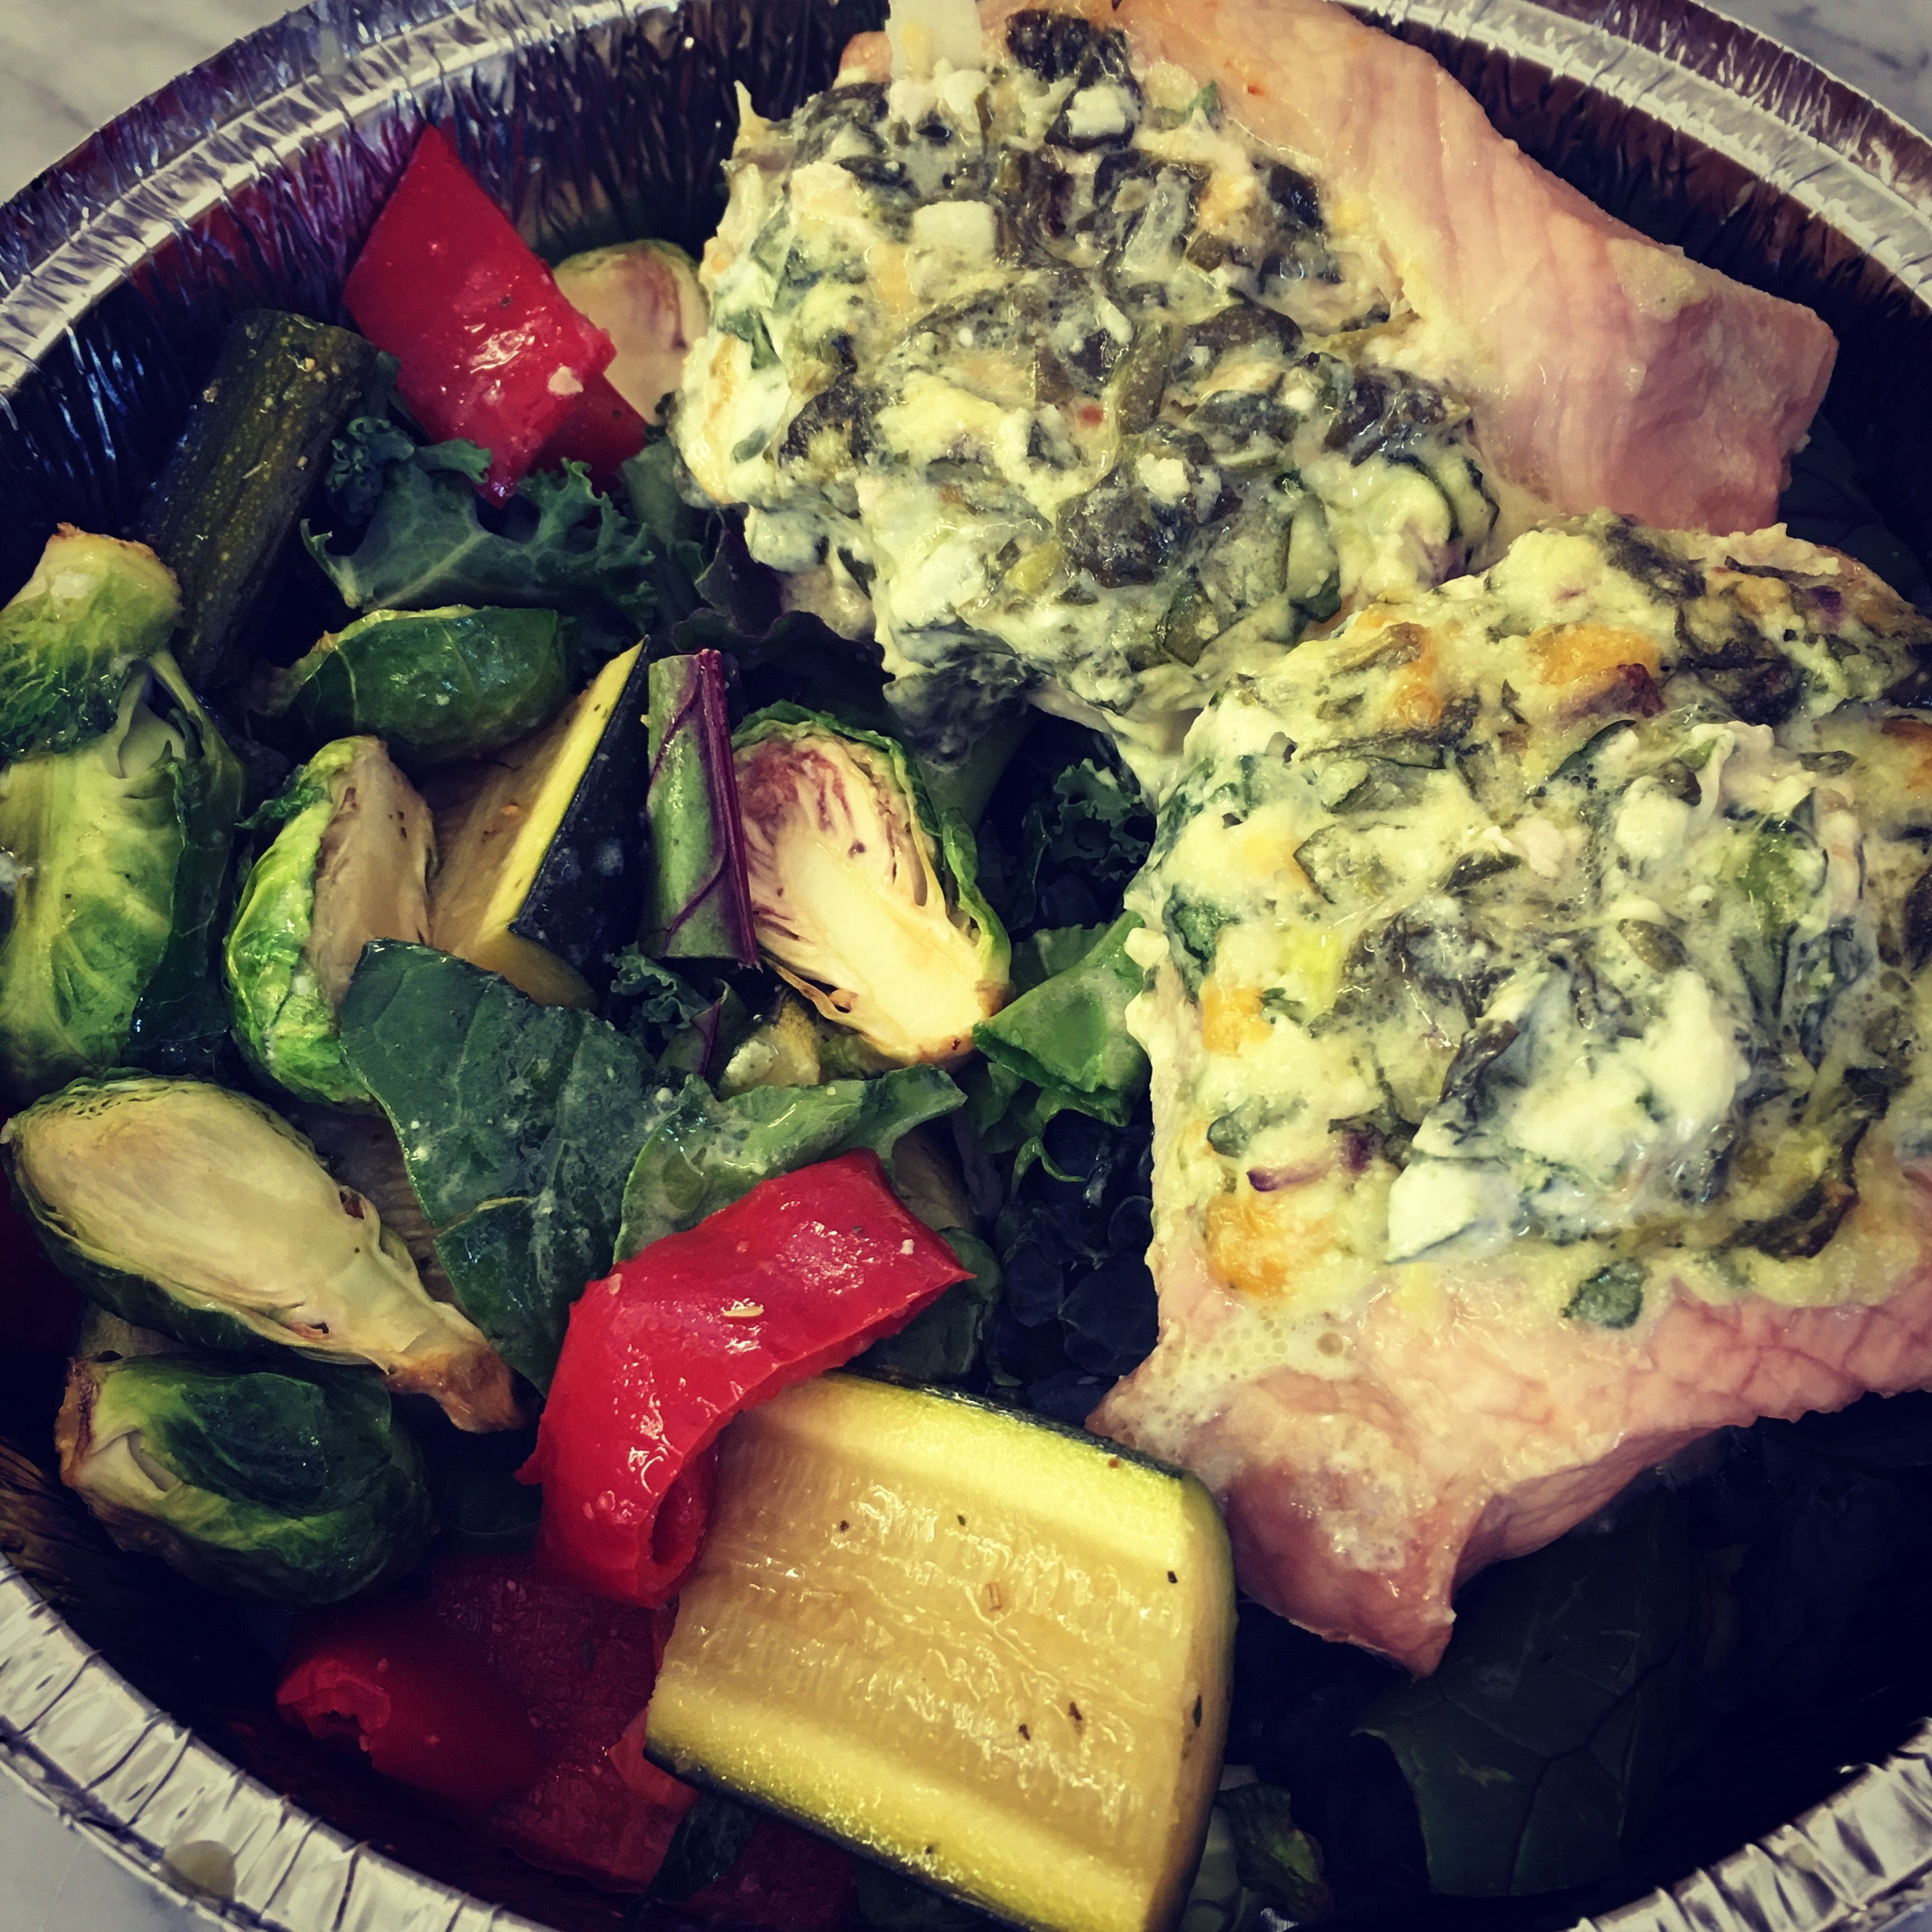 Spinach and Artichoke Stuffed Pork Chops with Veggies